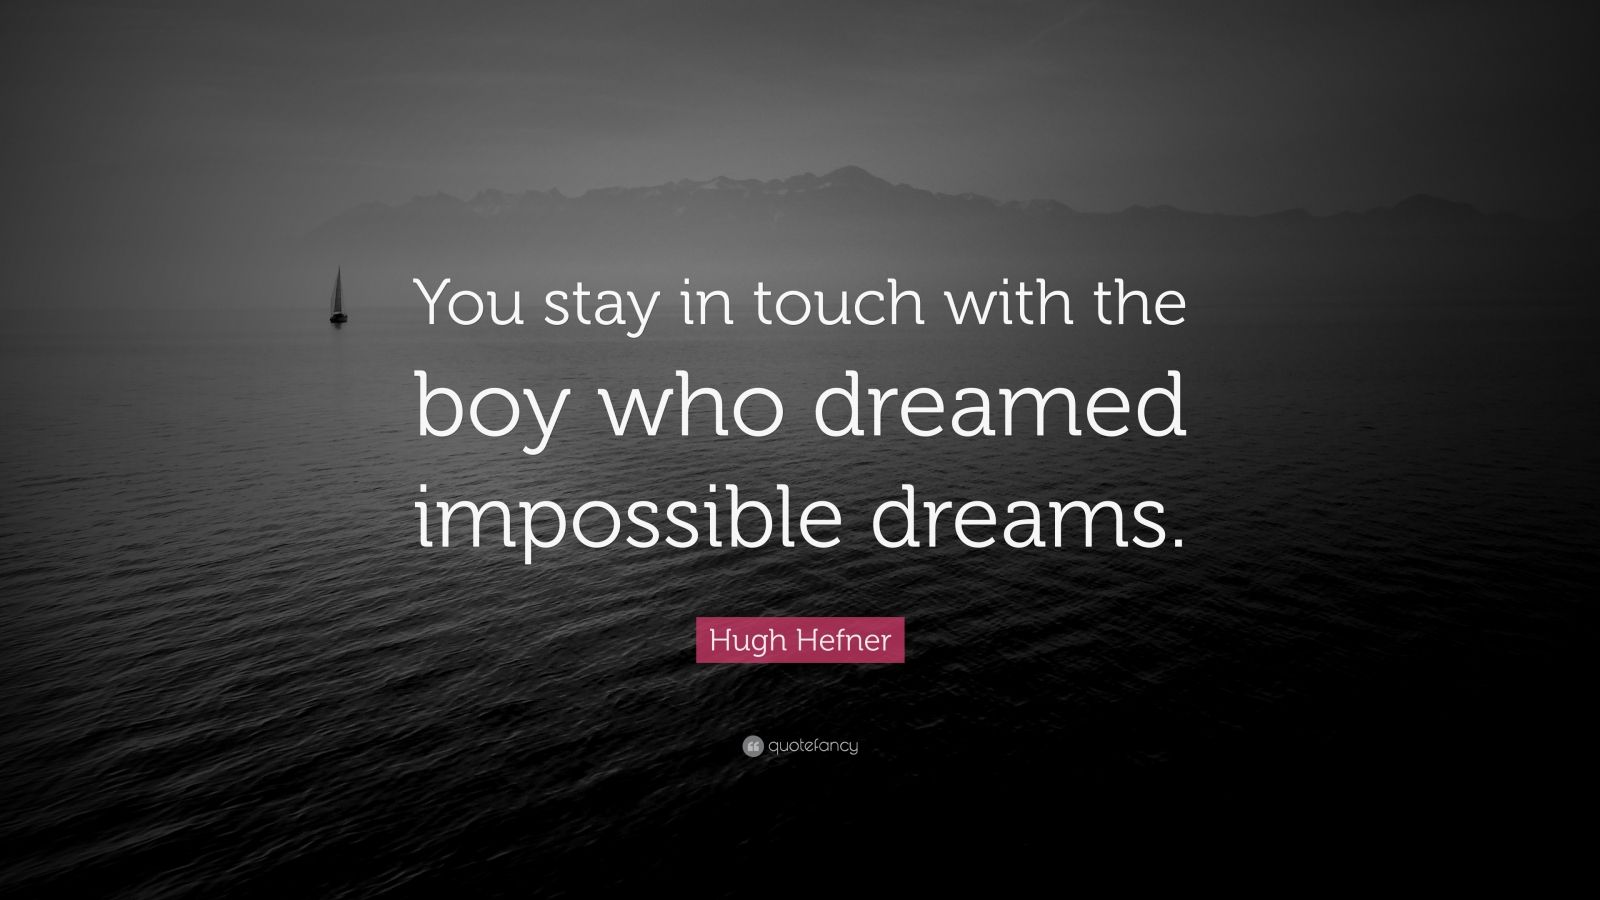 """Hugh Hefner Quote: """"You stay in touch with the boy who dreamed impossible dreams."""""""